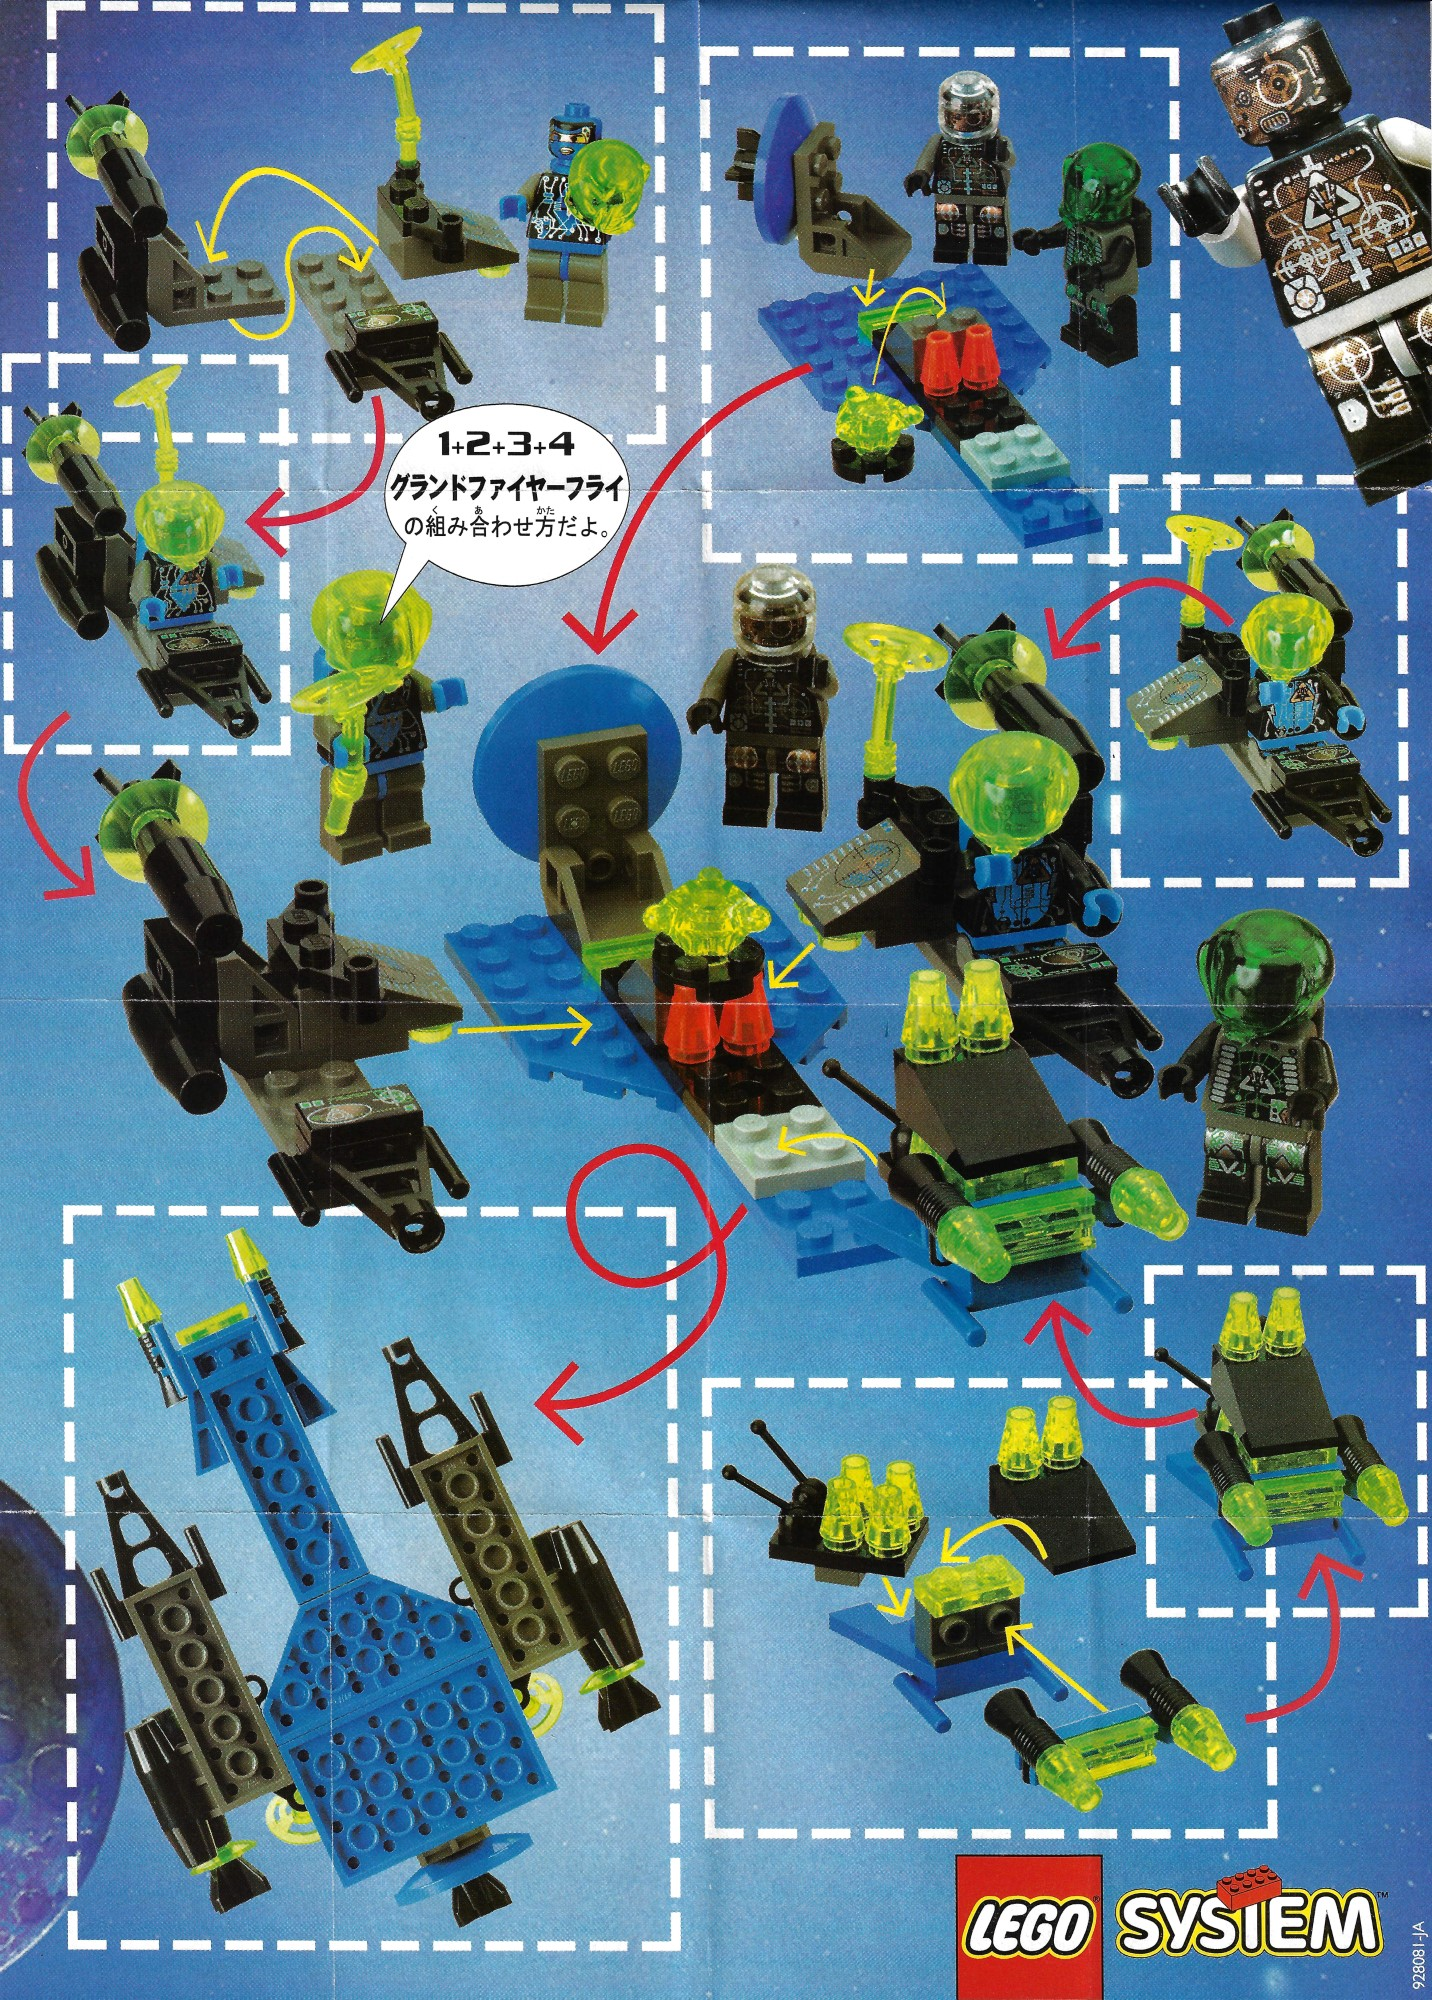 LEGO Insectoids Kabaya 3073 Booster Anleitung Multimodell Und Katalog 2